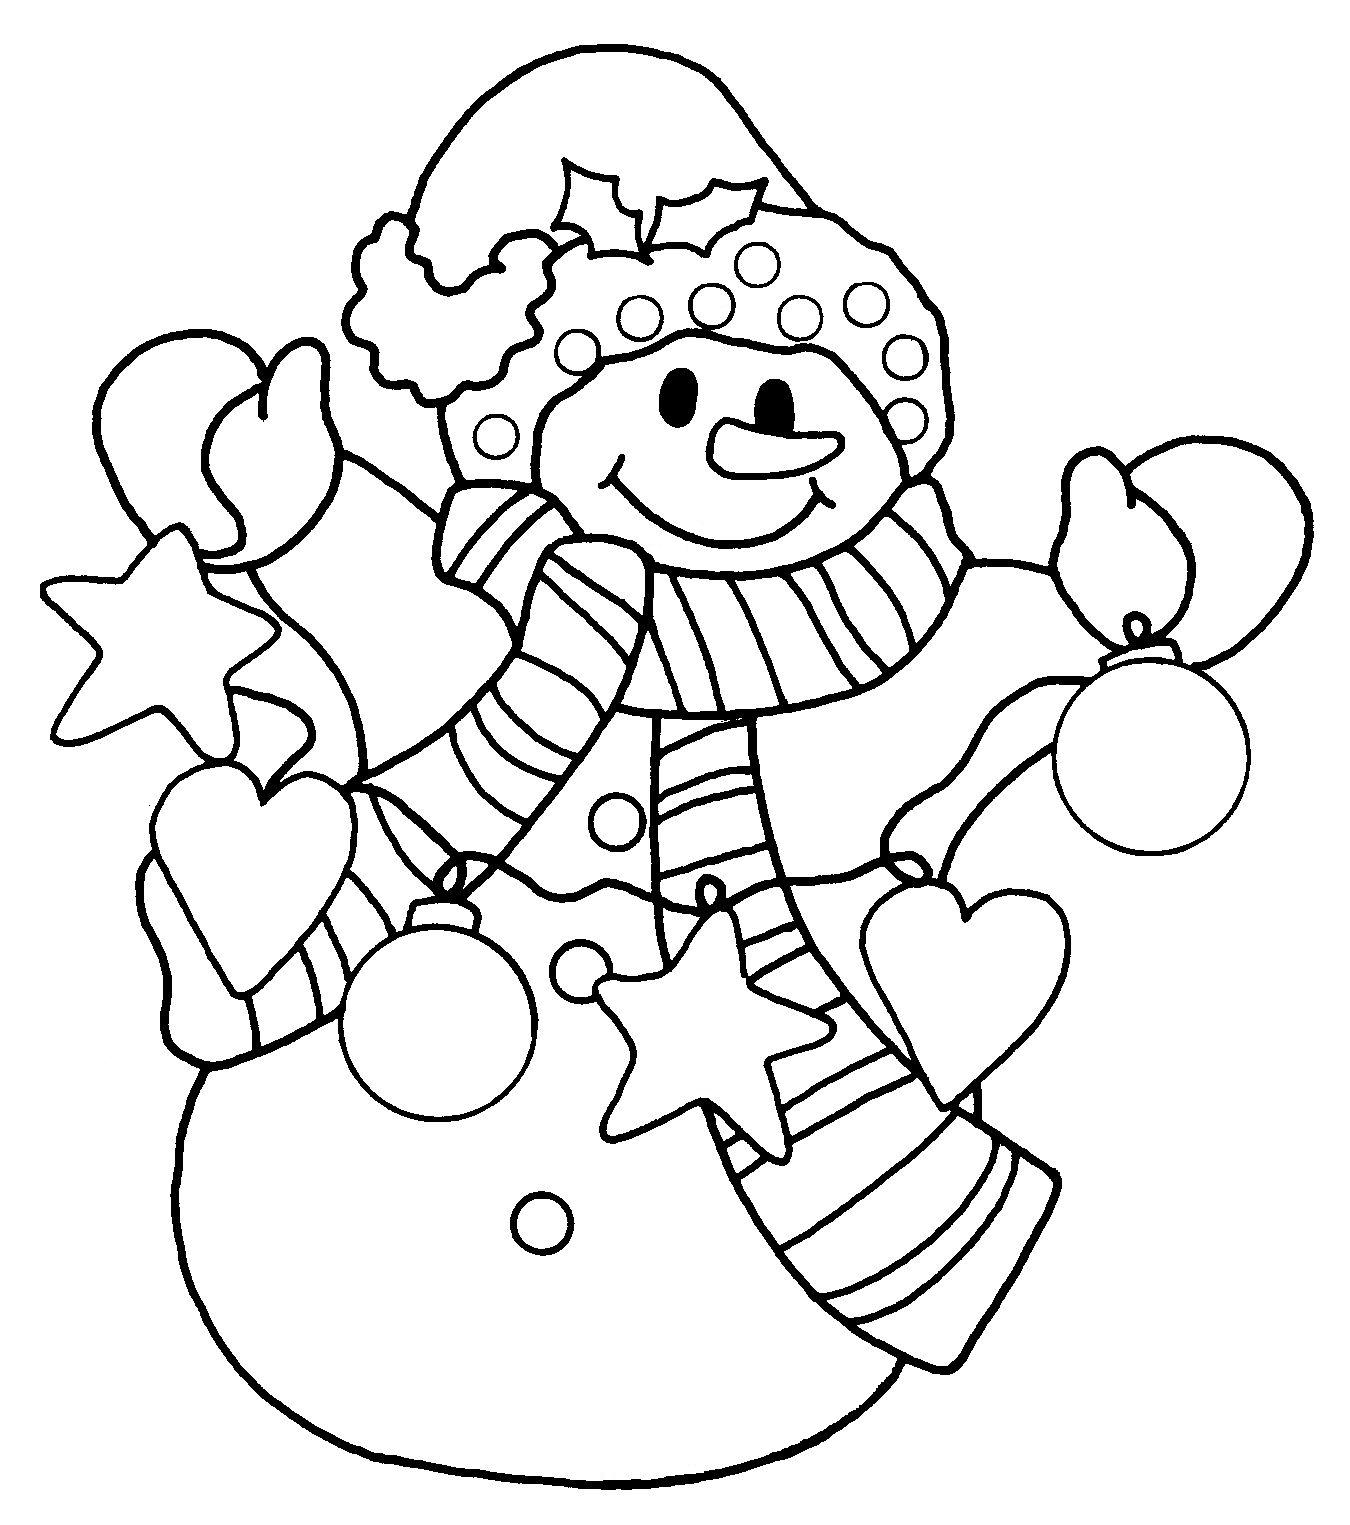 Dynamite image for printable snowman patterns